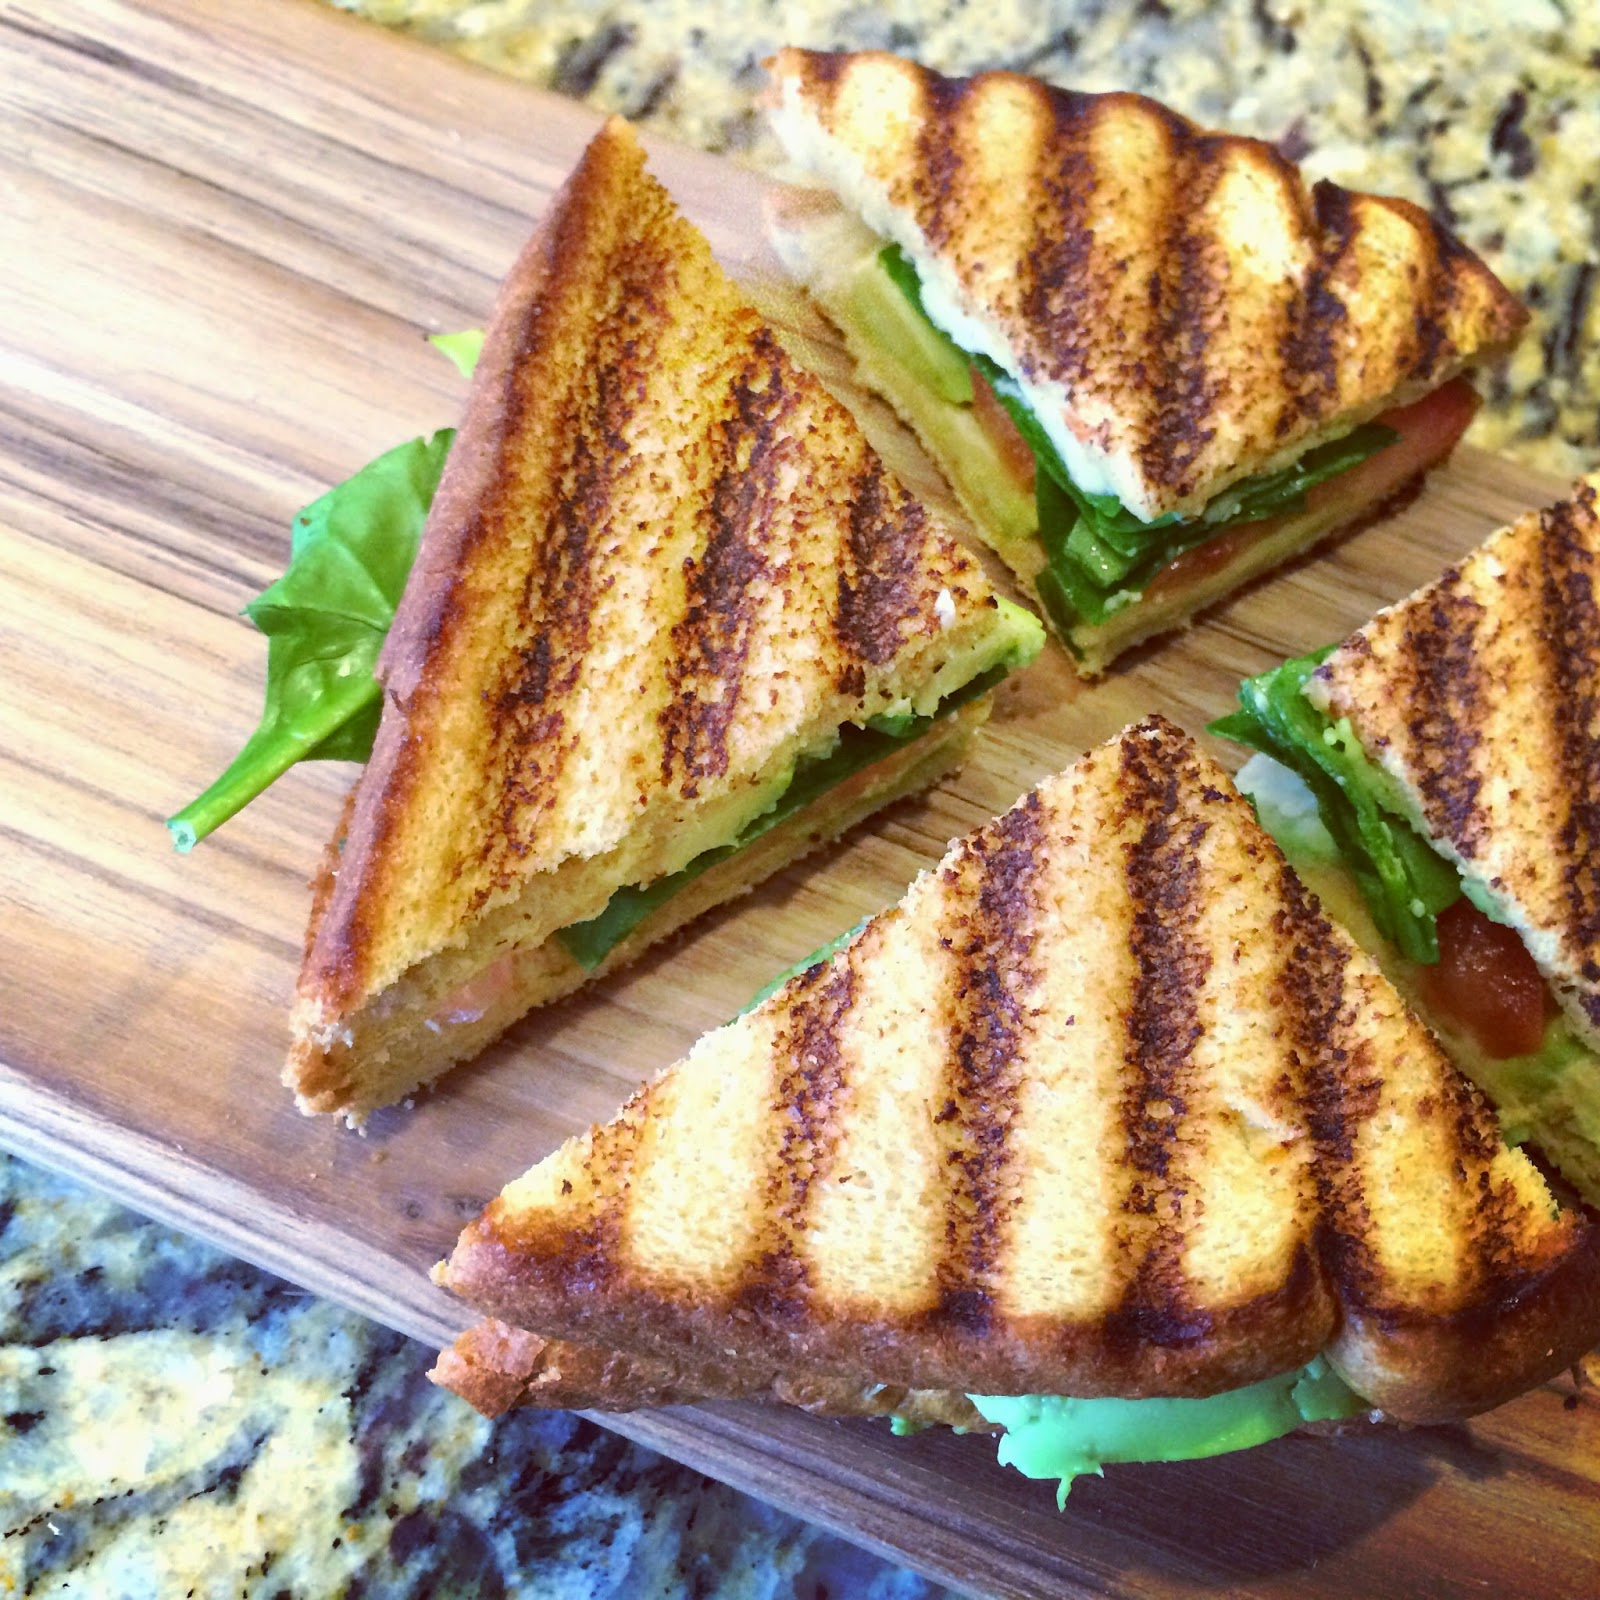 Avocado & Tomato Grilled 'Cheese' - I Don't Go to the Gym